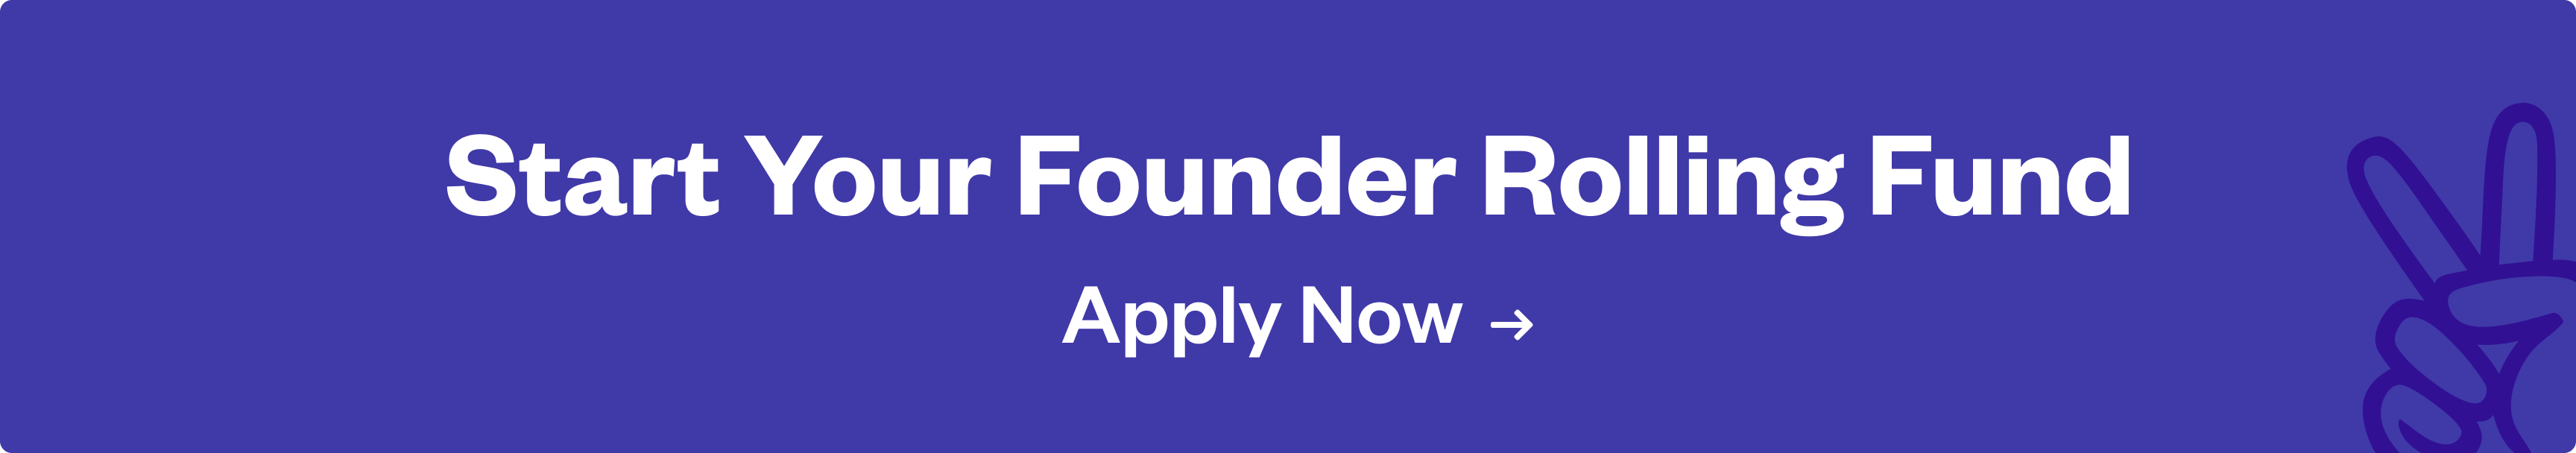 start your founder rolling fund